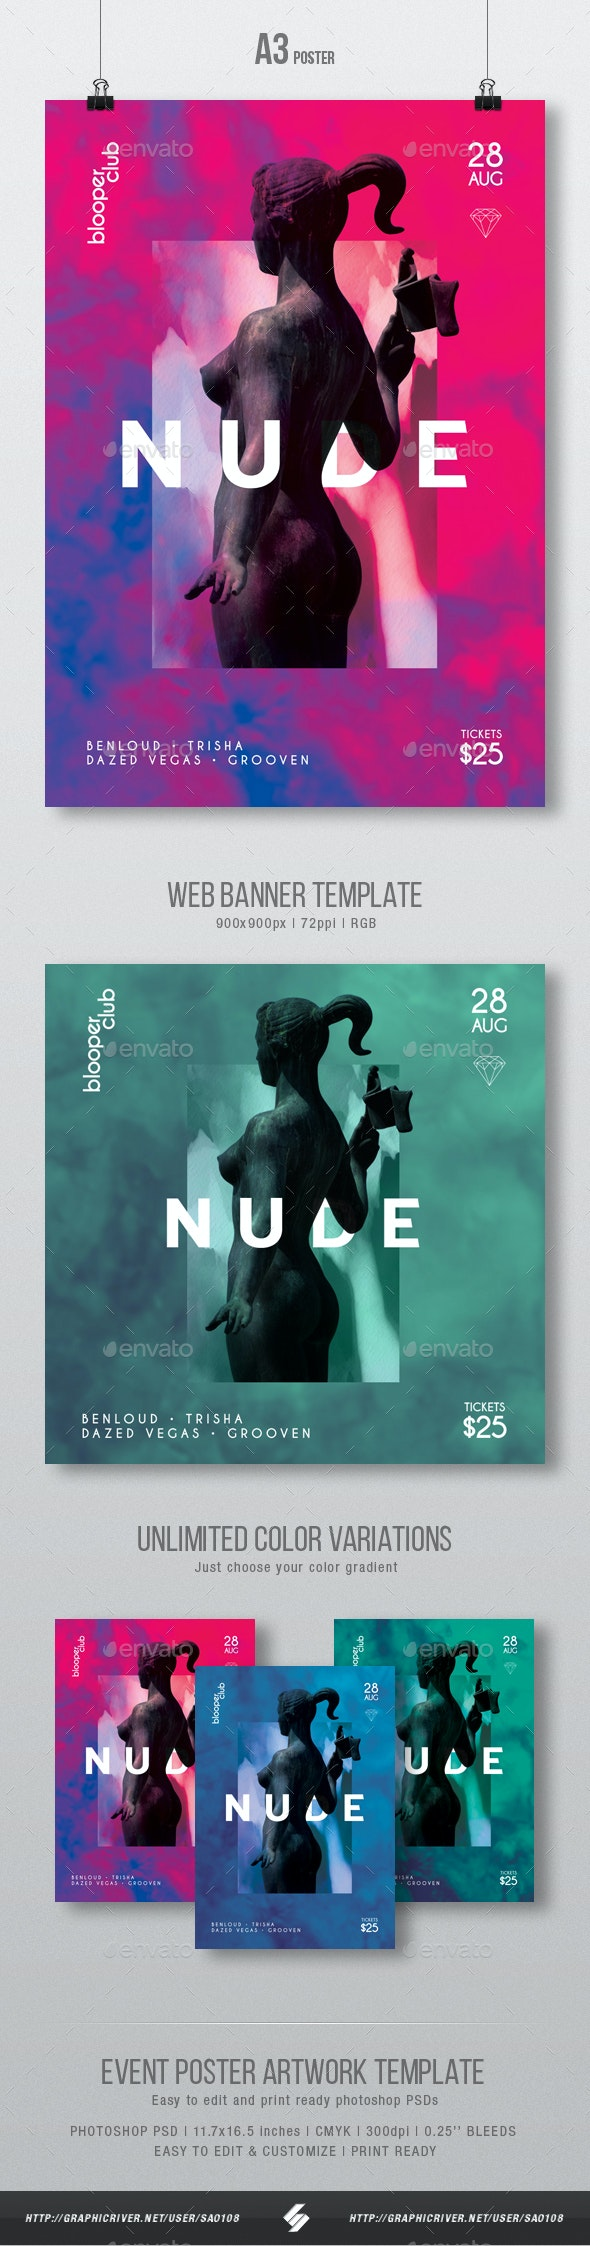 Nude - Creative Party Flyer / Poster Artwork Template A3 - Events Flyers